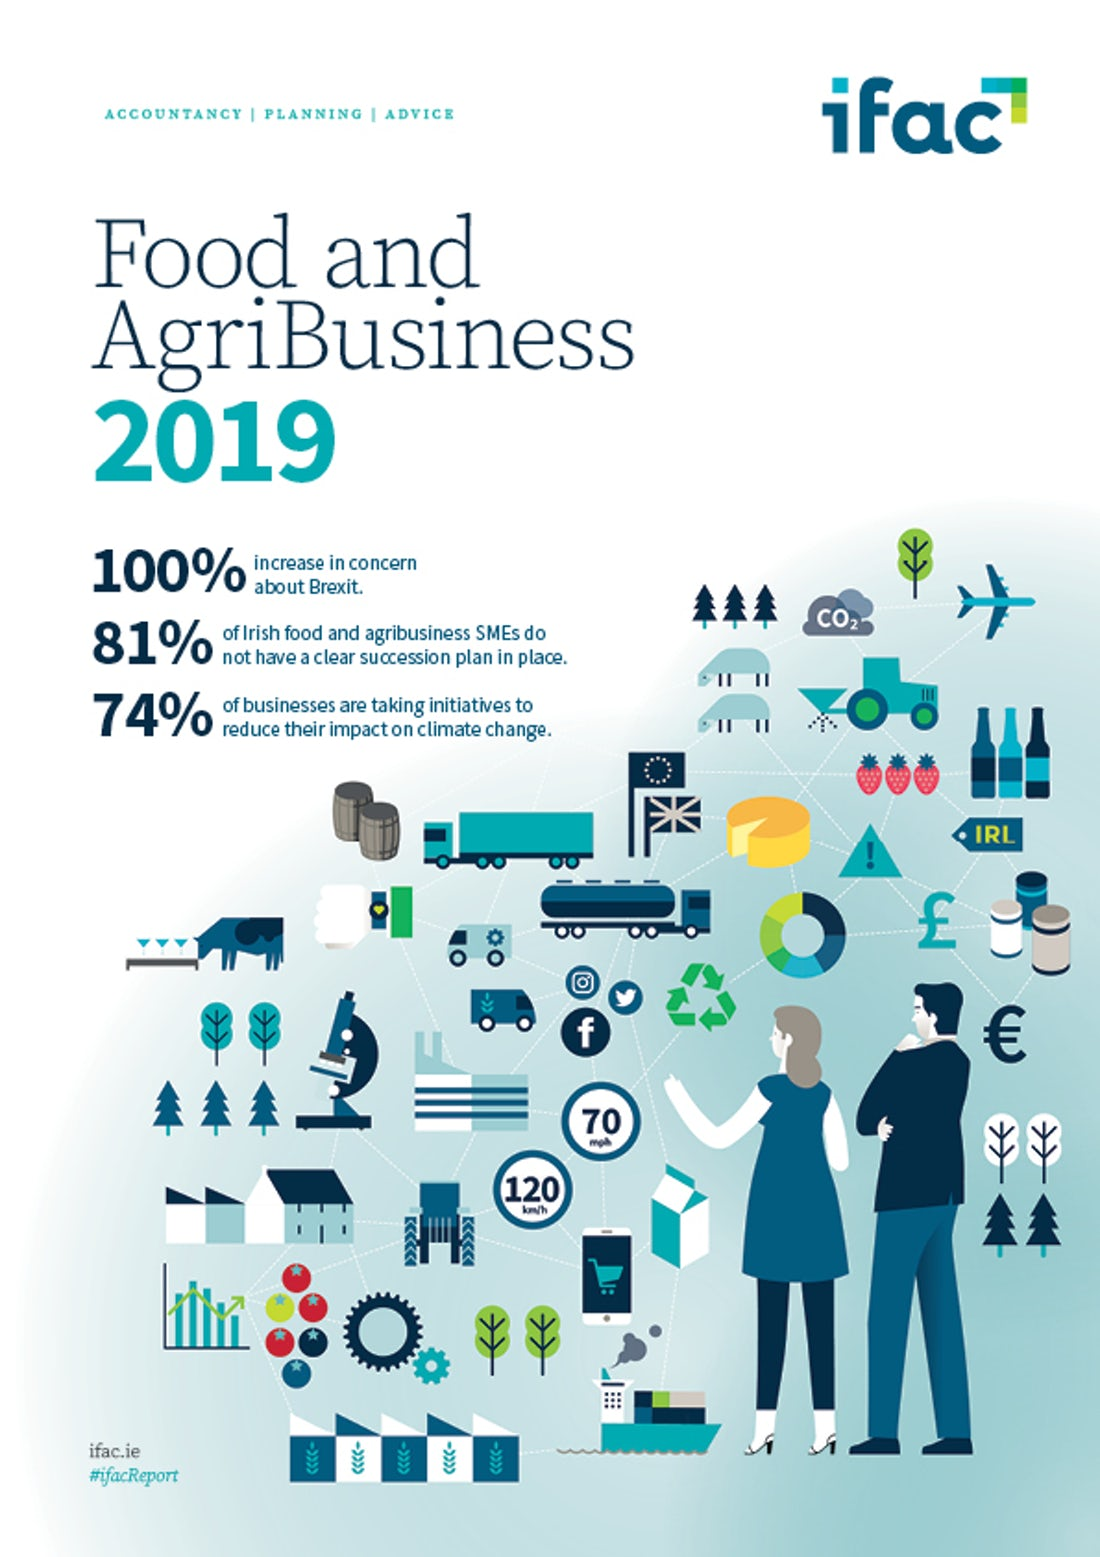 Download the 2019 ifac Food & AgriBusiness Report